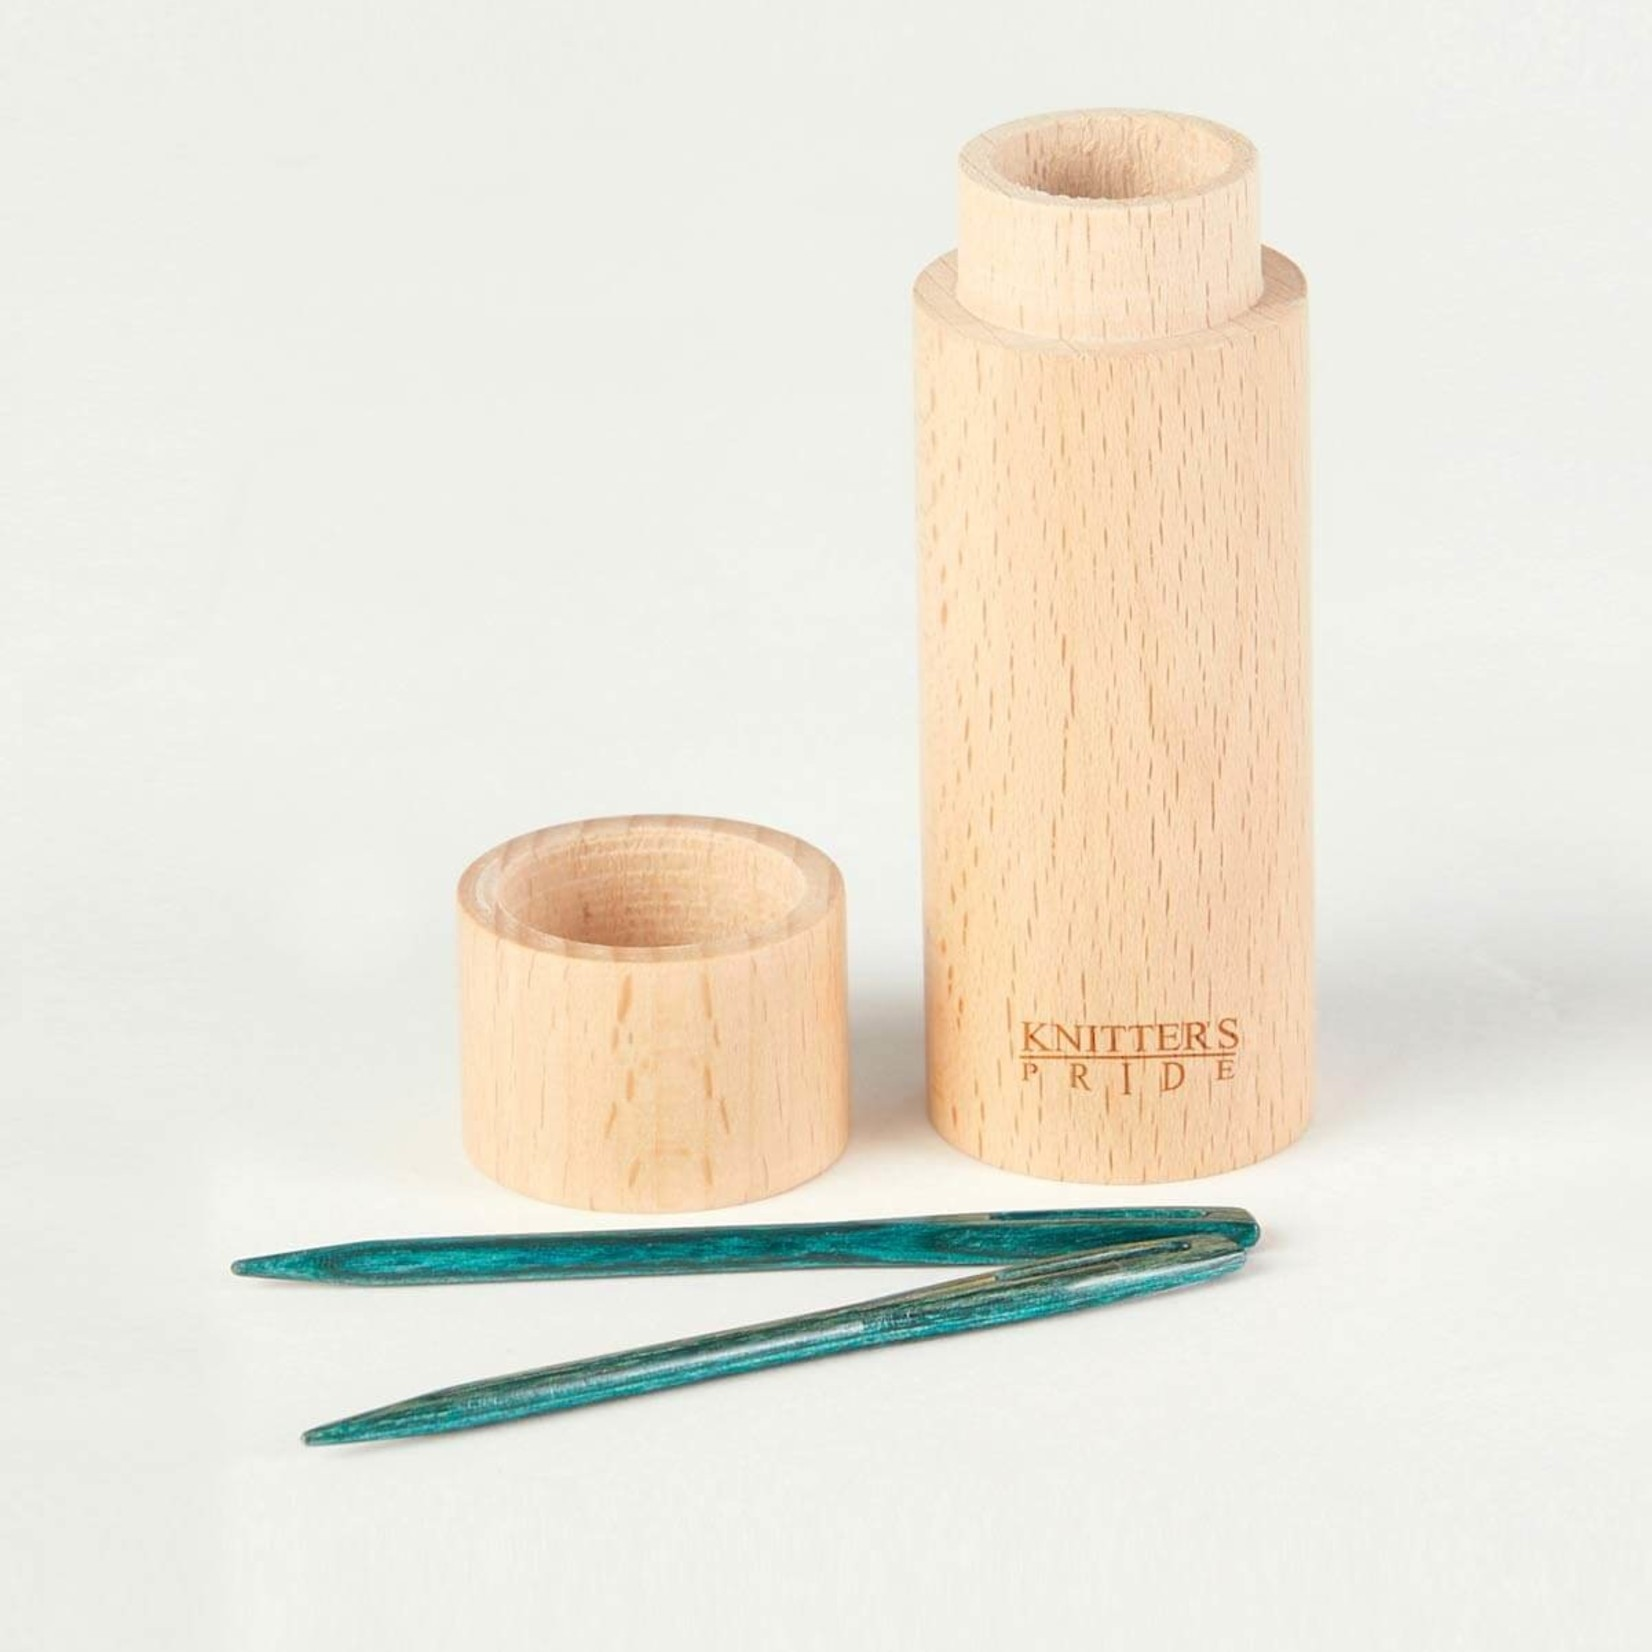 Knitter's Pride Mindful Collection Teal Wooden Darning Needles